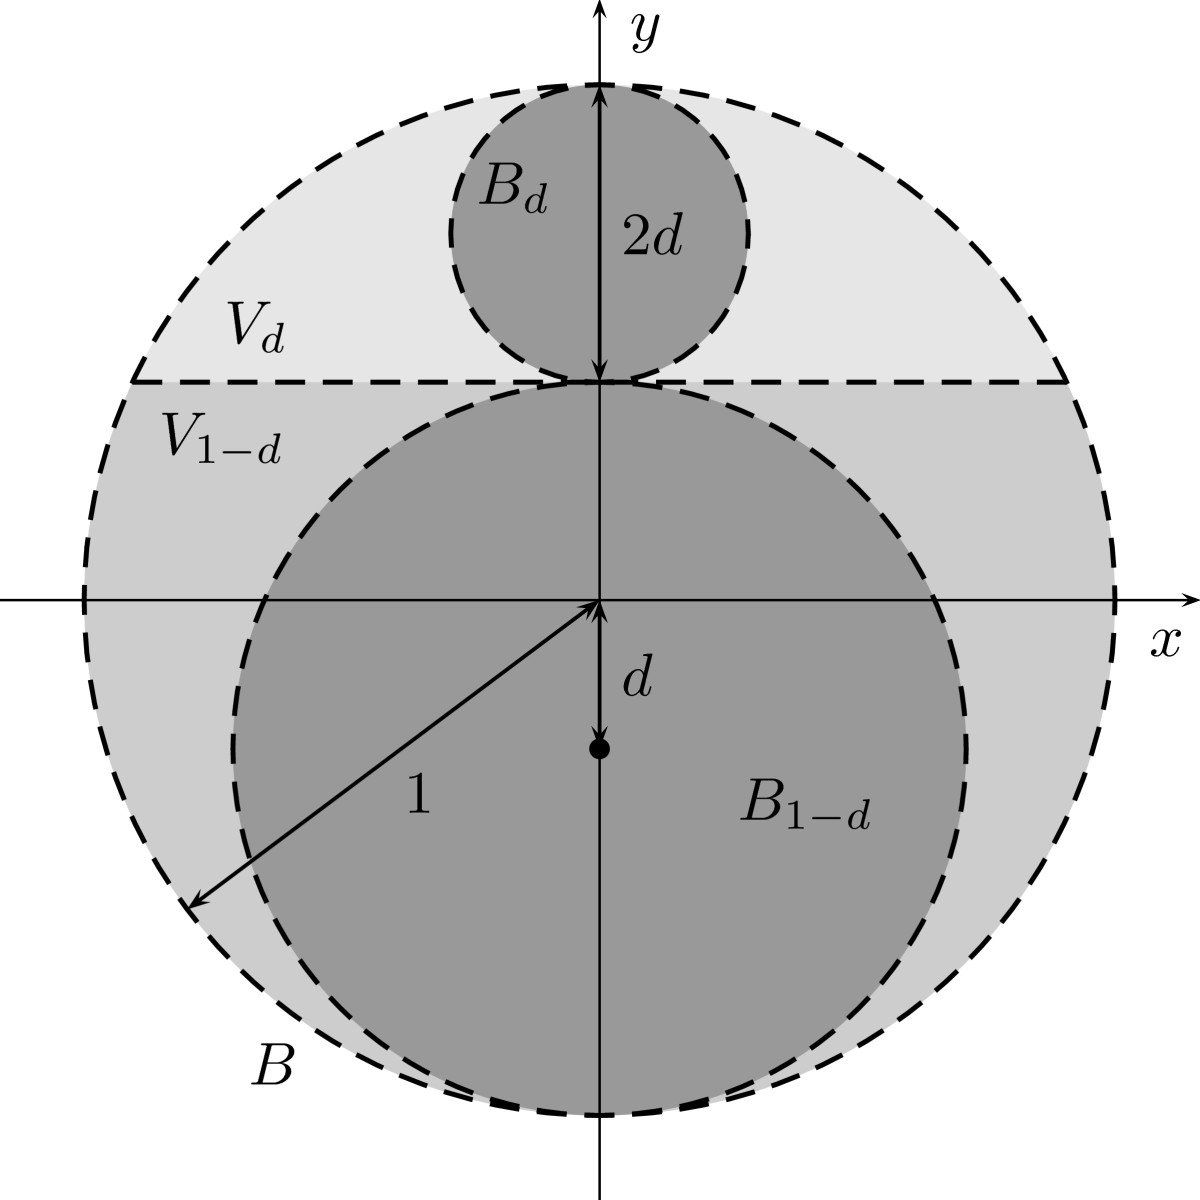 http://static-content.springer.com/image/art%3A10.1186%2F1687-2770-2011-27/MediaObjects/13661_2011_Article_73_Fig2_HTML.jpg